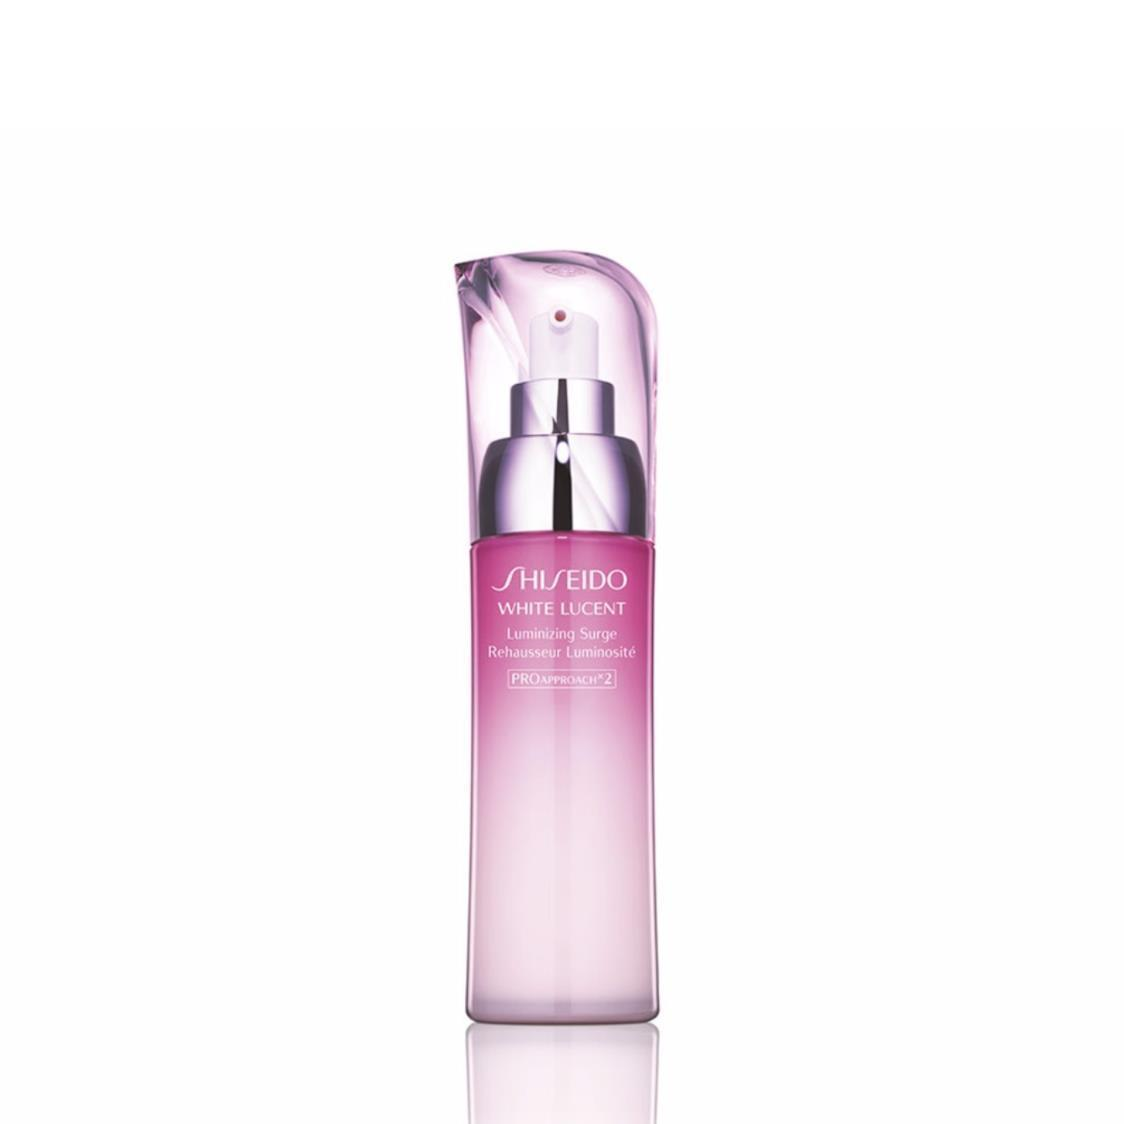 White Lucent Luminizing Surge 75ml